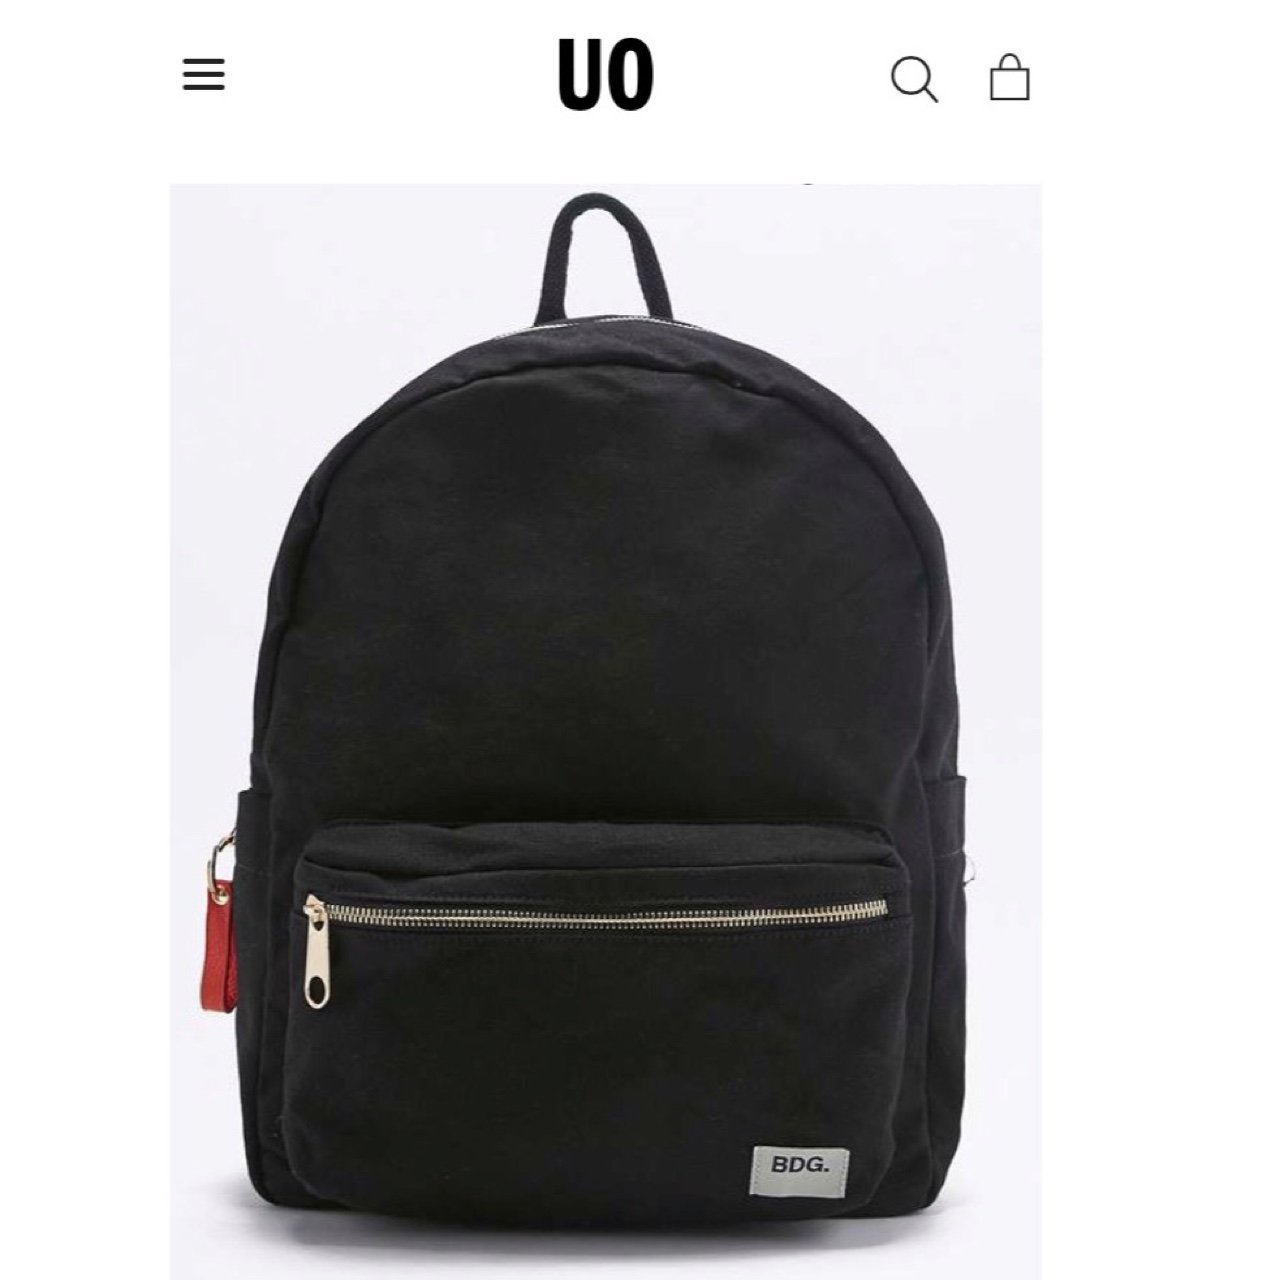 548b55df3058 Black BDG canvas backpack from Urban Outfitters. Original to - Depop